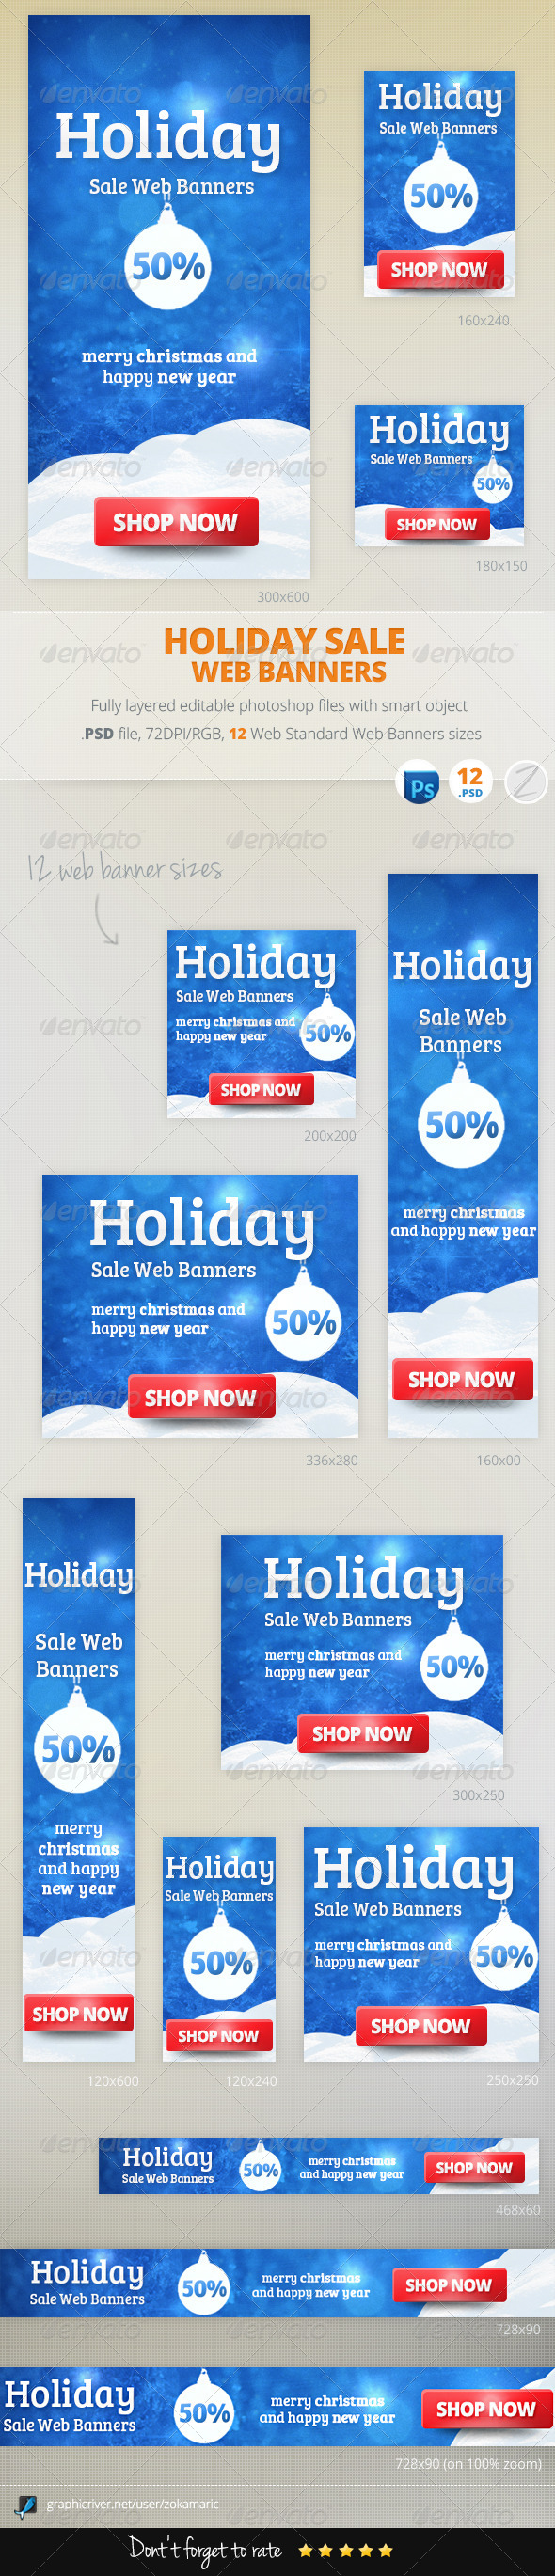 Holiday Sale Web Banners - Banners & Ads Web Elements